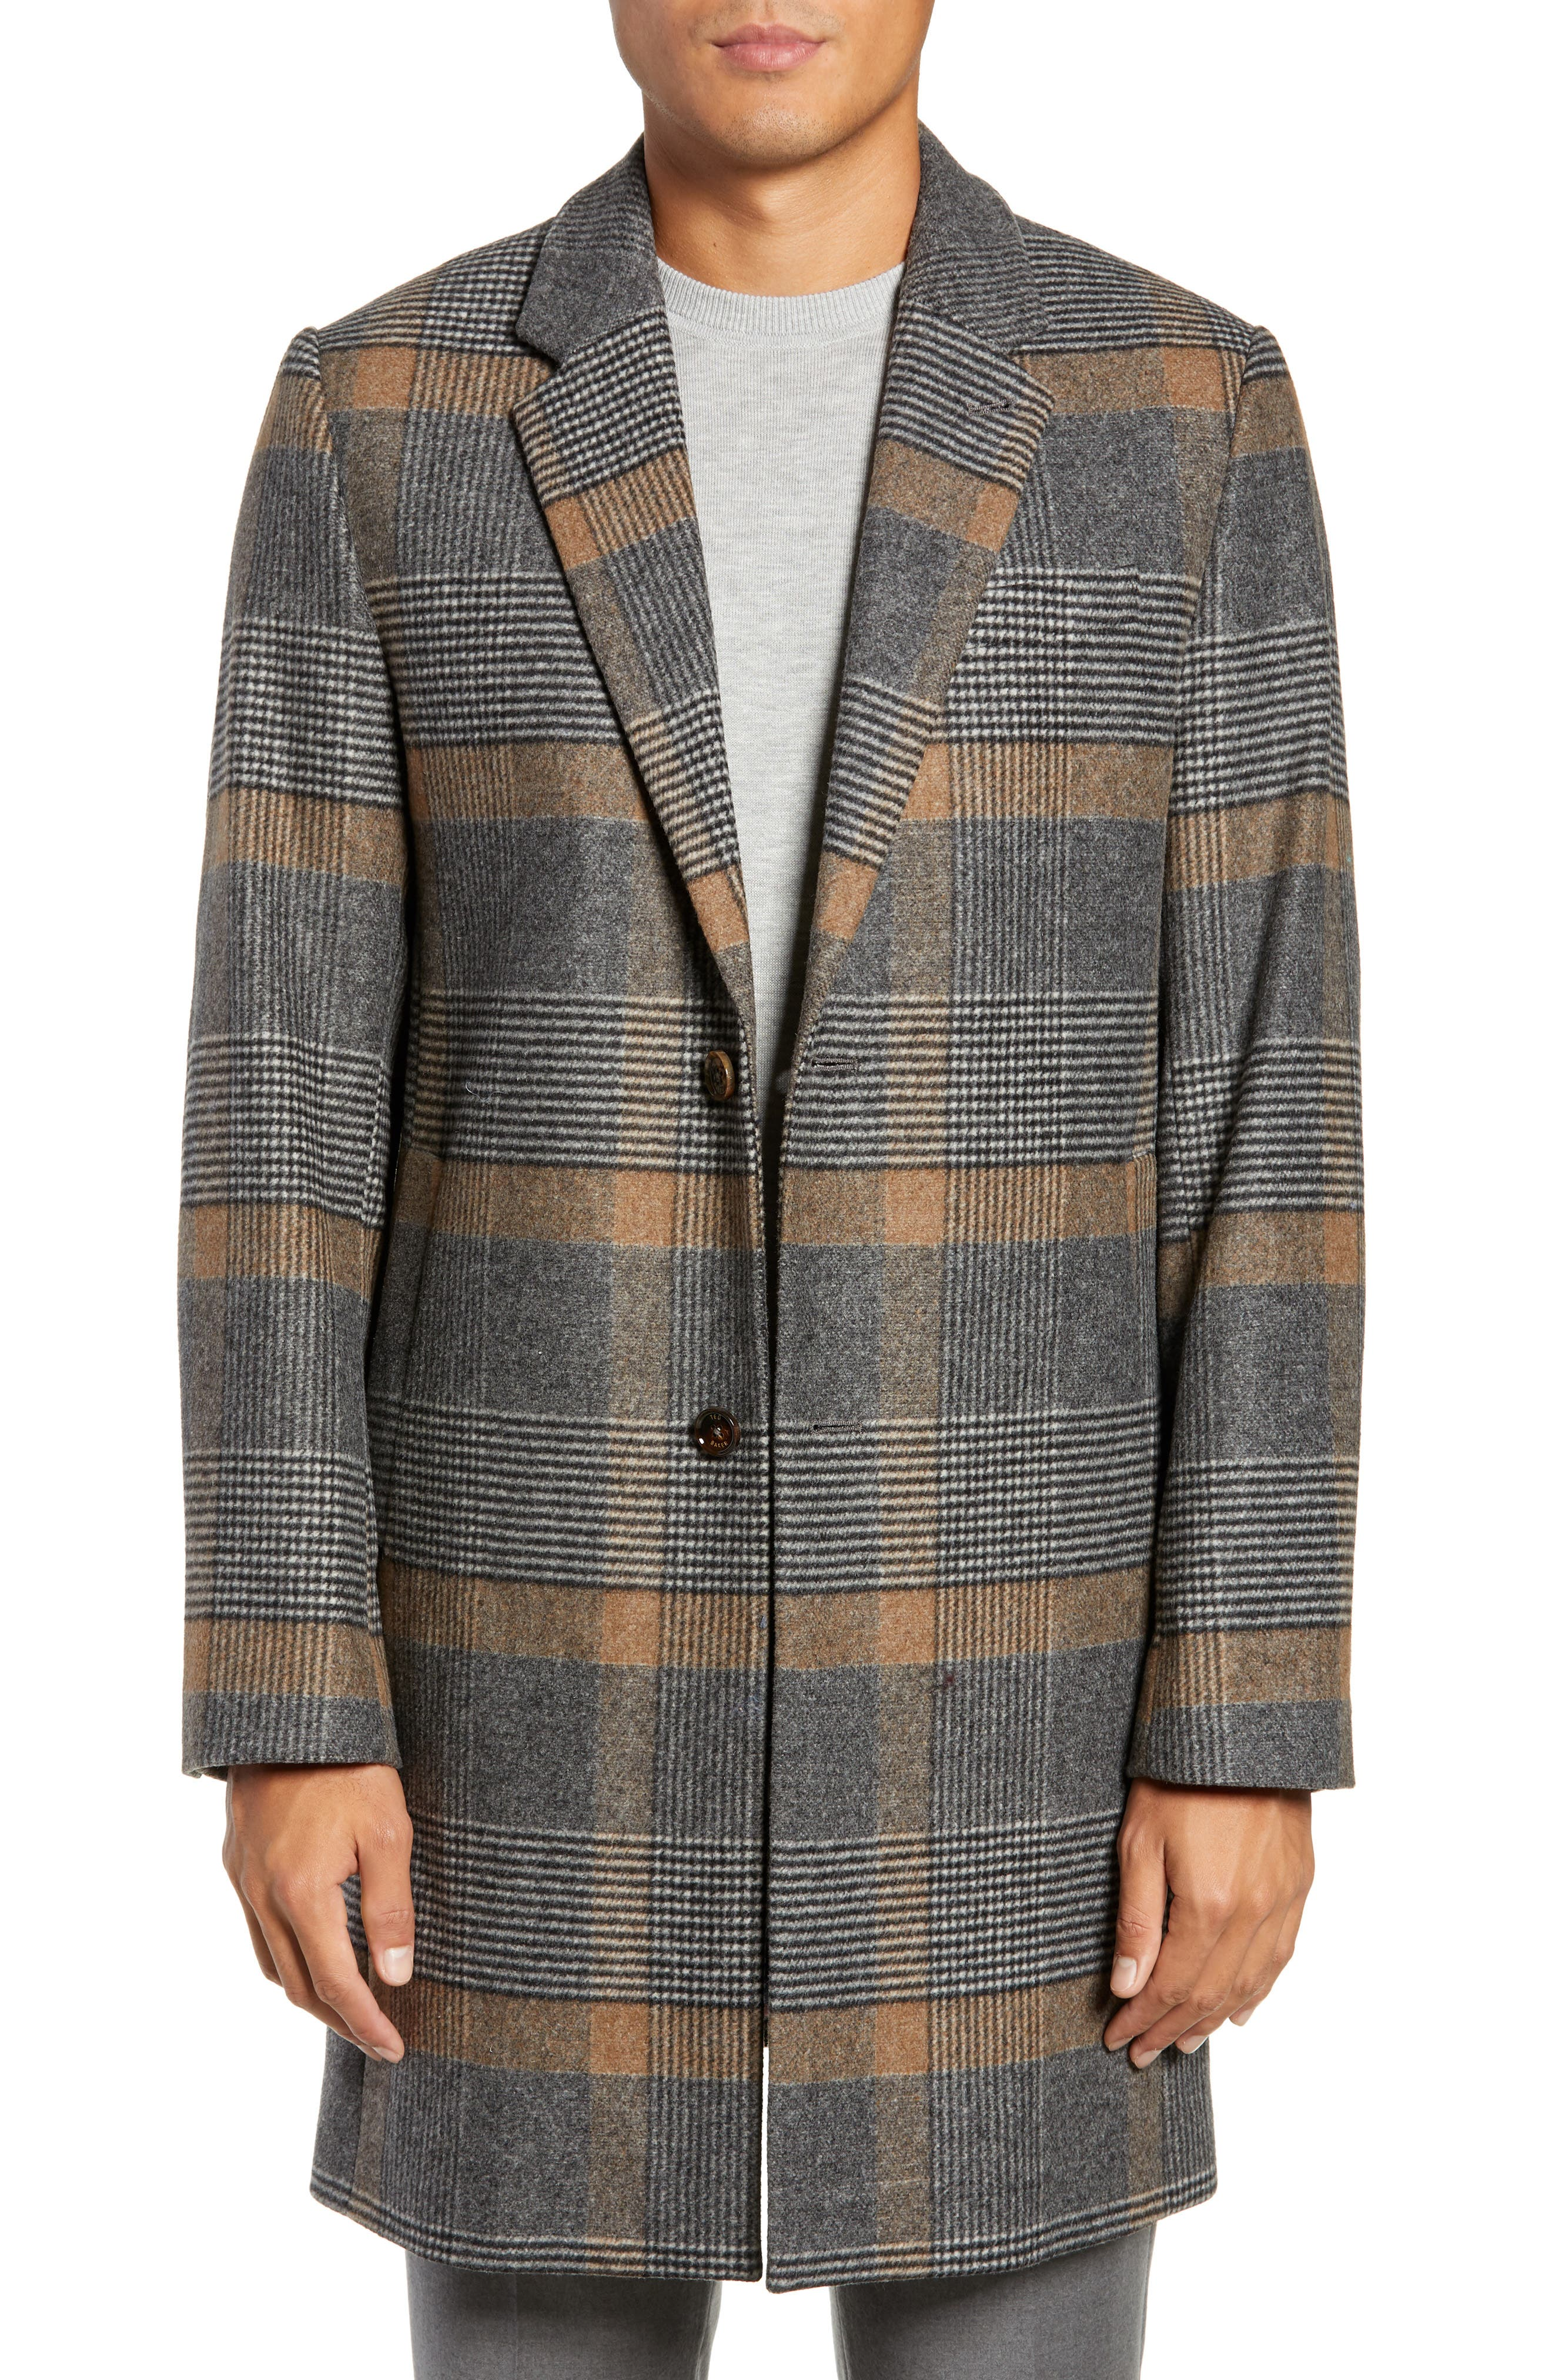 Frais Check Wool Overcoat,                             Main thumbnail 1, color,                             CAMEL